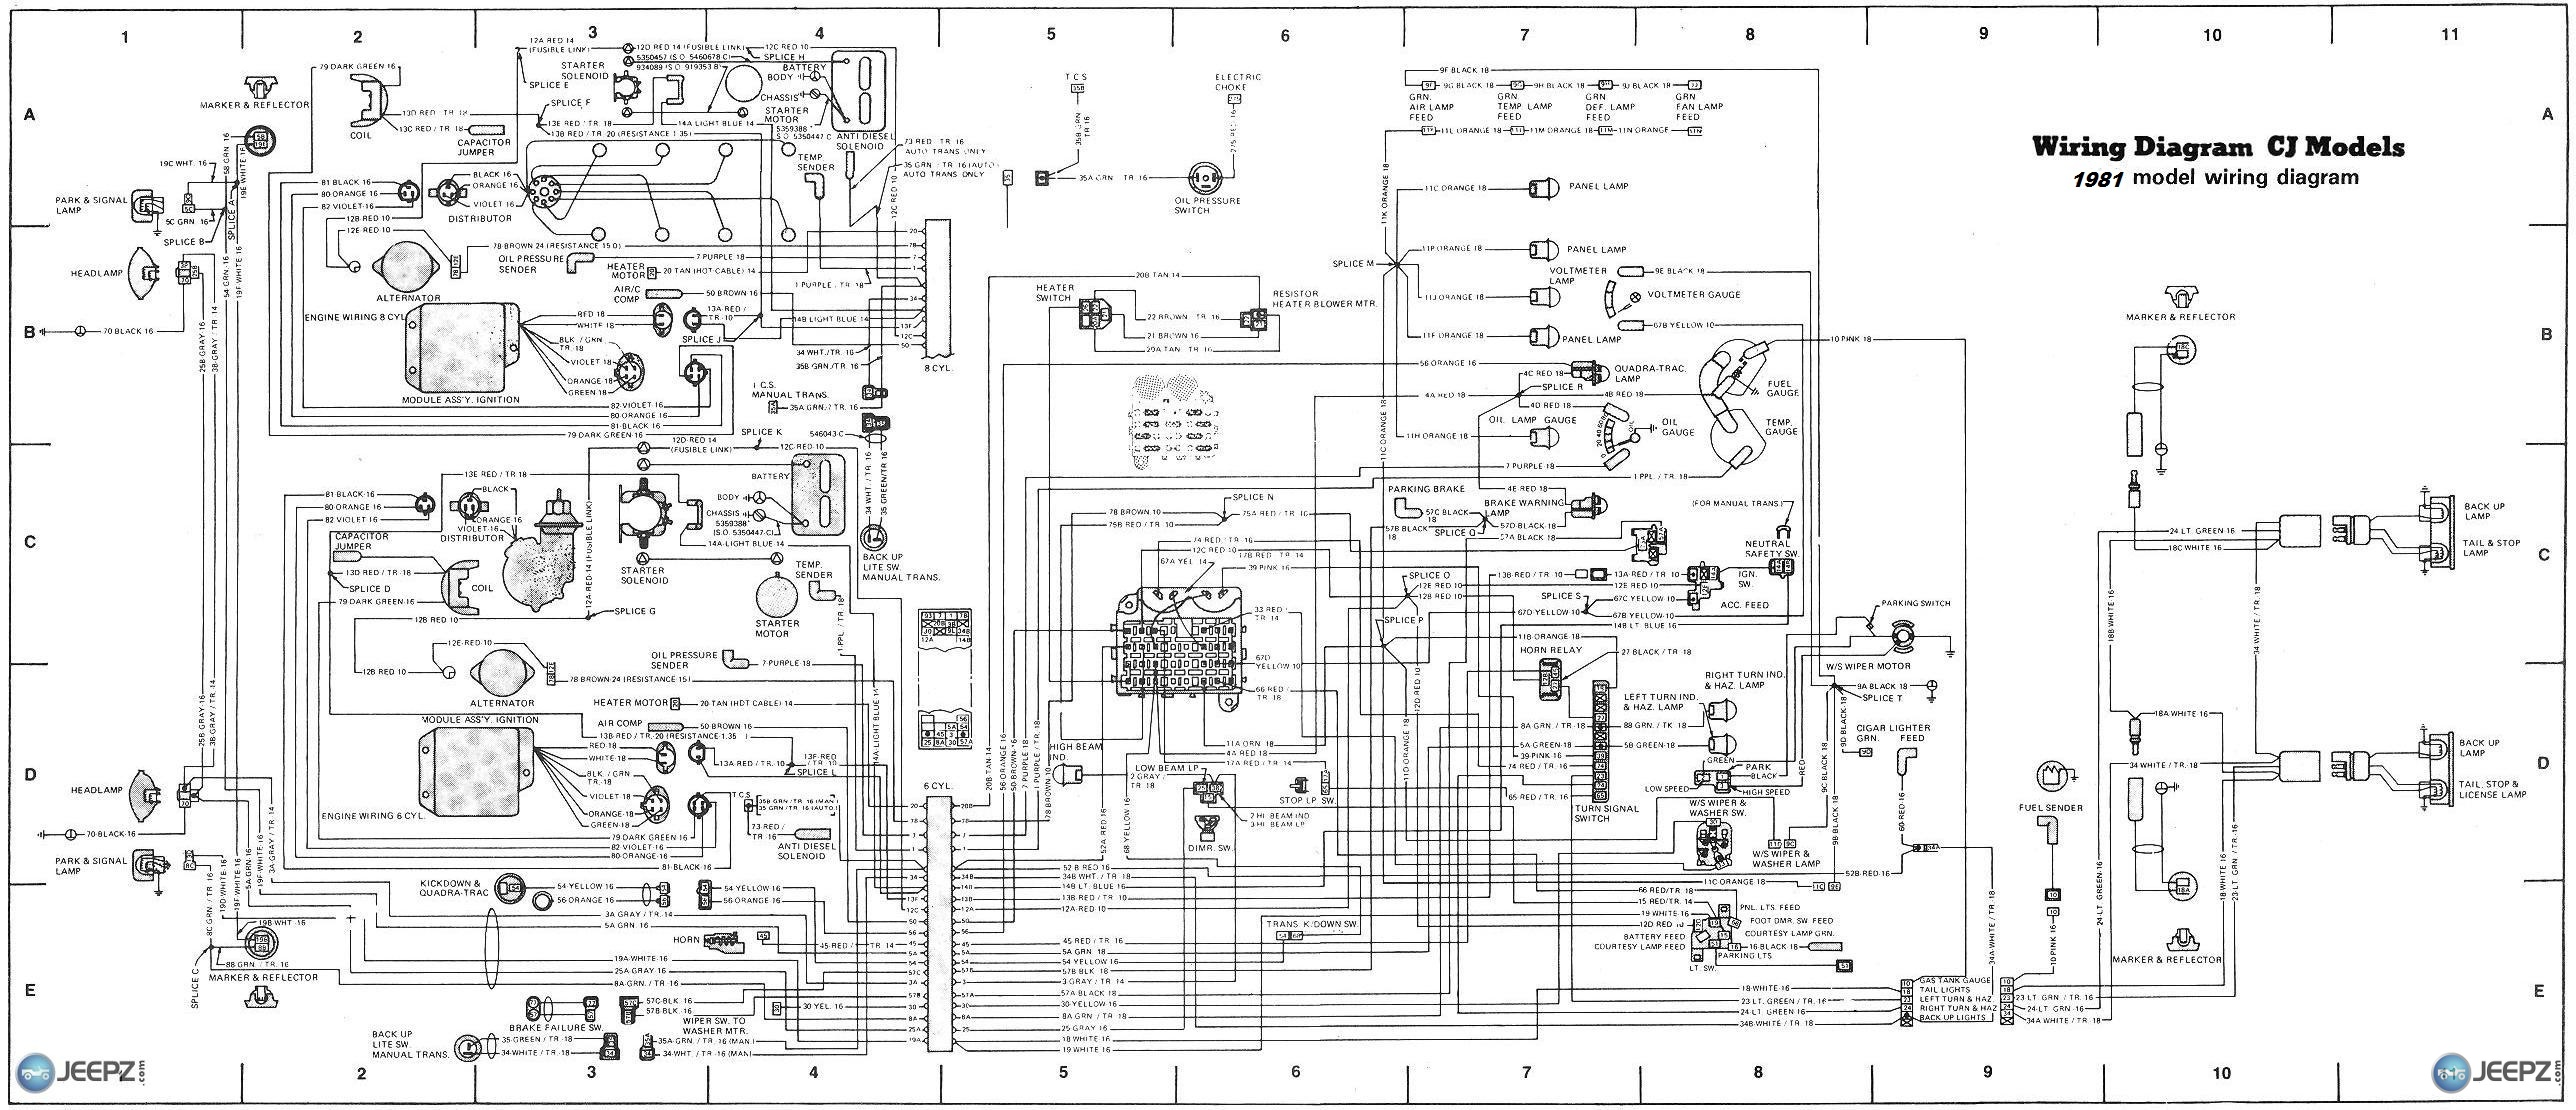 1980 jeep cj7 wiring diagram auto electrical wiring diagram 1986 jeep cj7  wiring 1980 jeep cj7